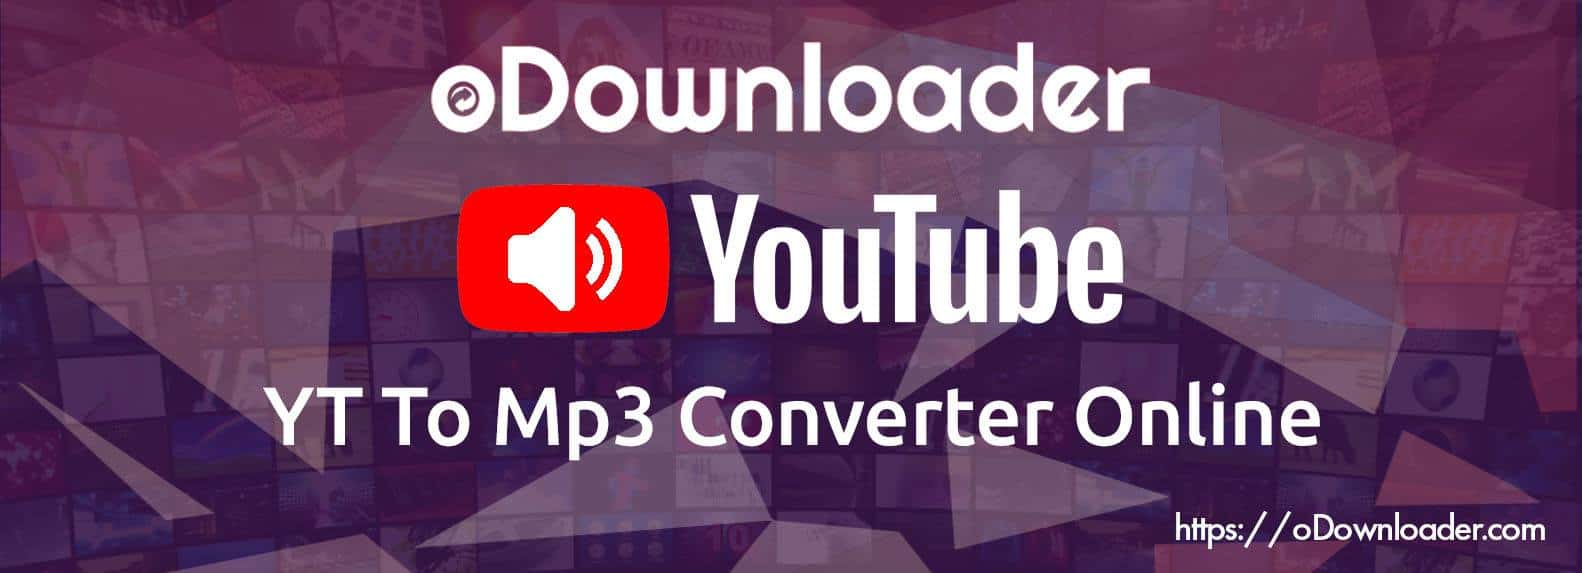 YT to Mp3 Converter Online